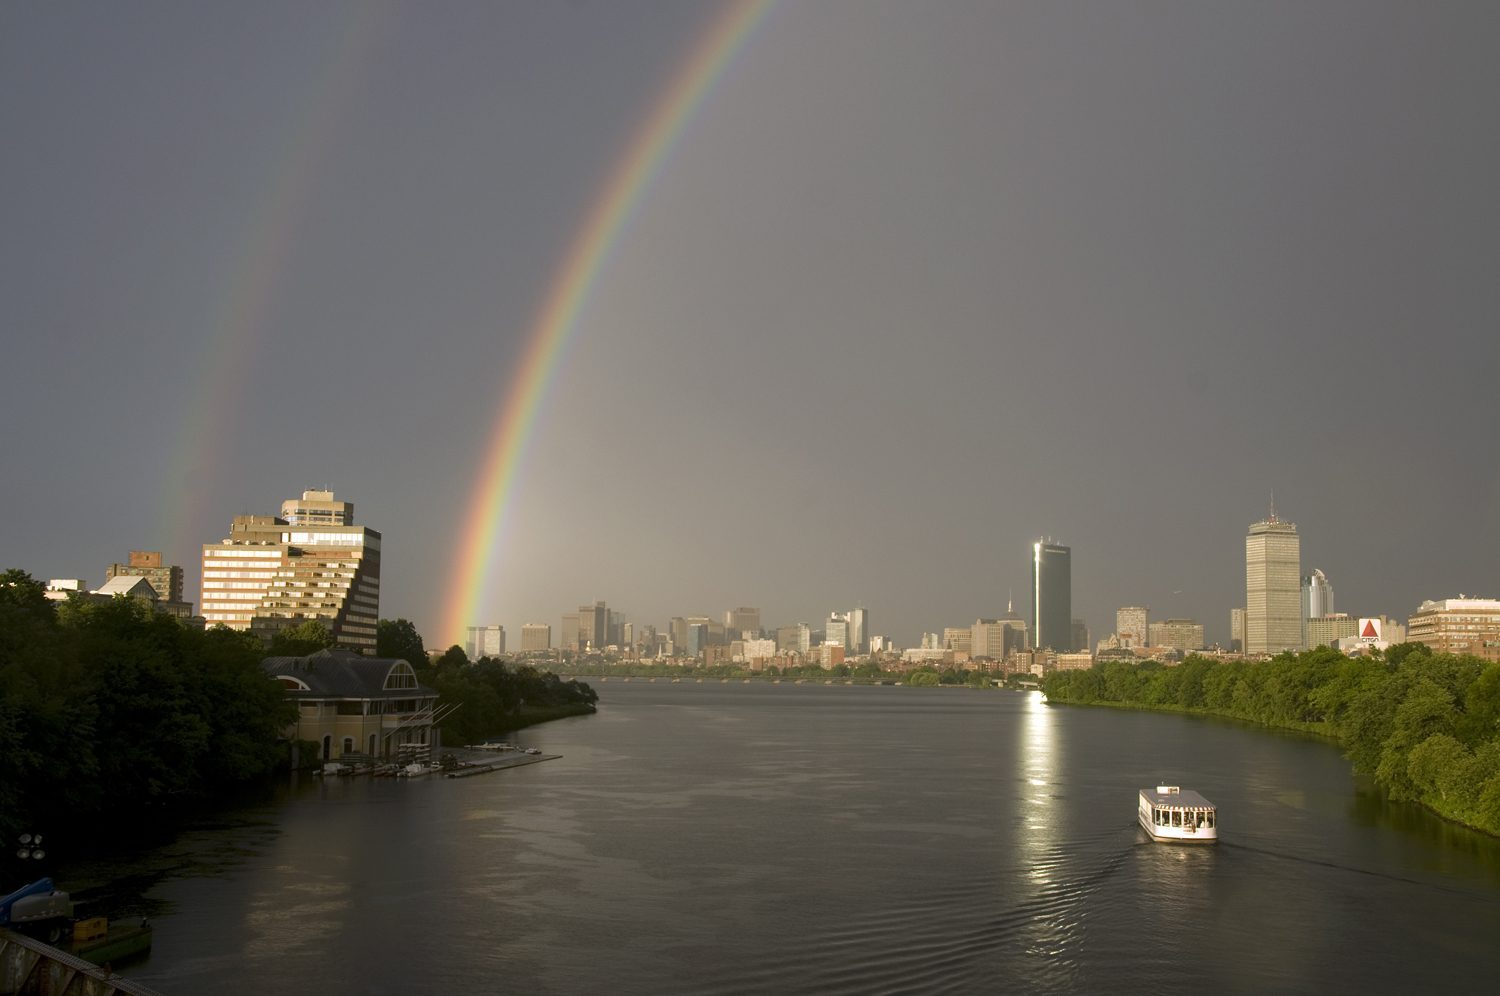 Double rainbow over the Charles River